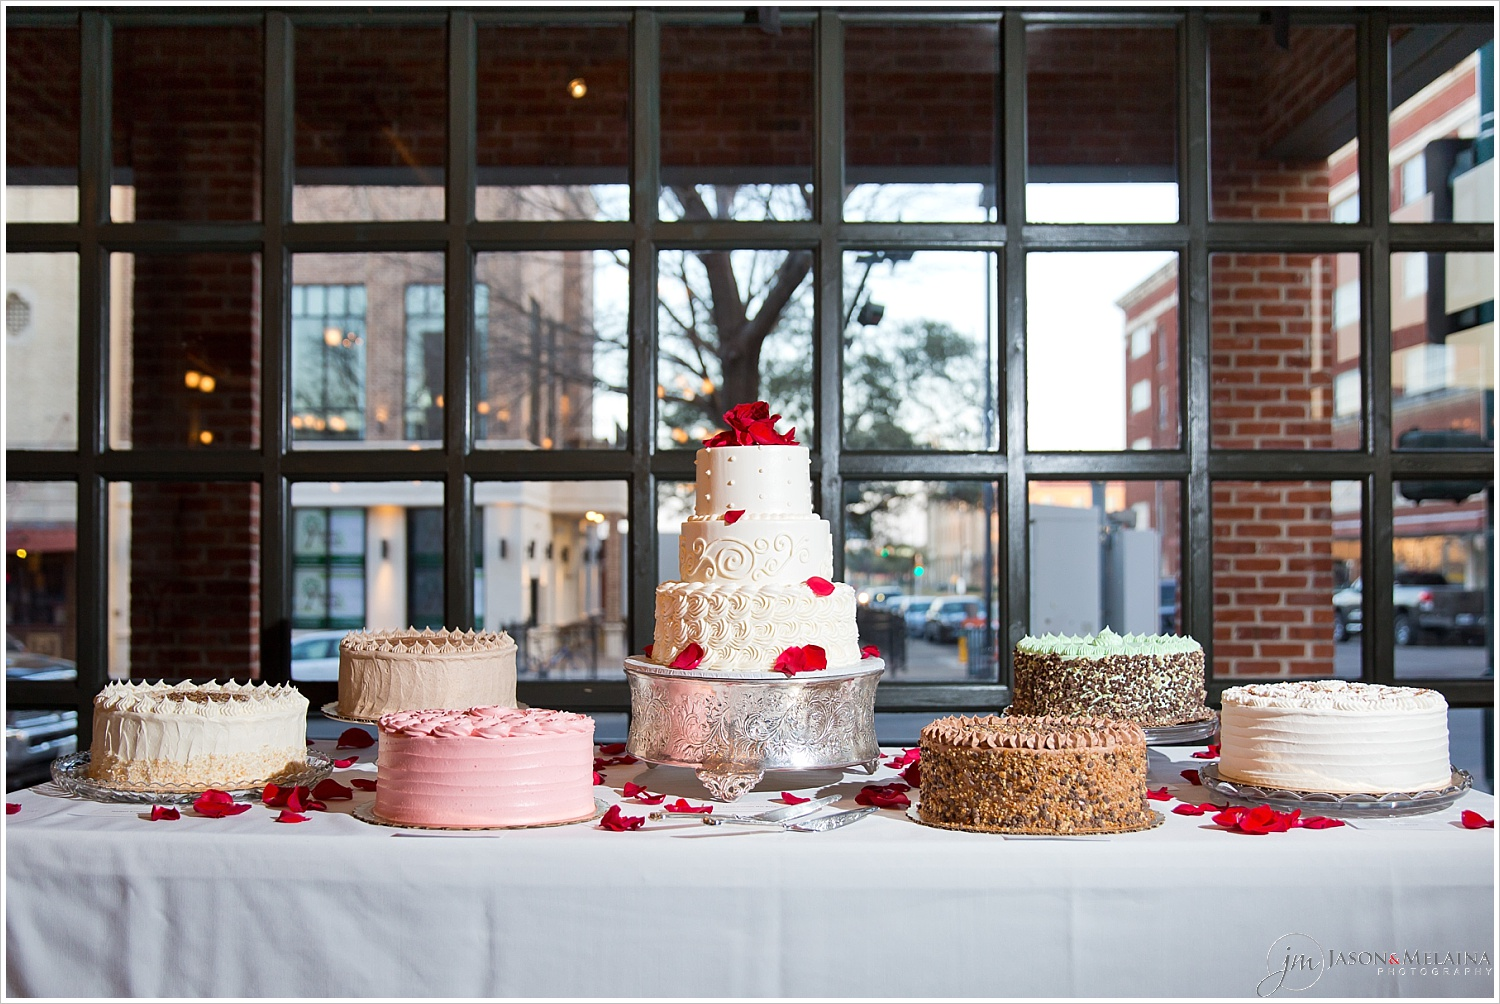 Bridal cake with multiple groom's cakes, The Palladium, Waco, Texas